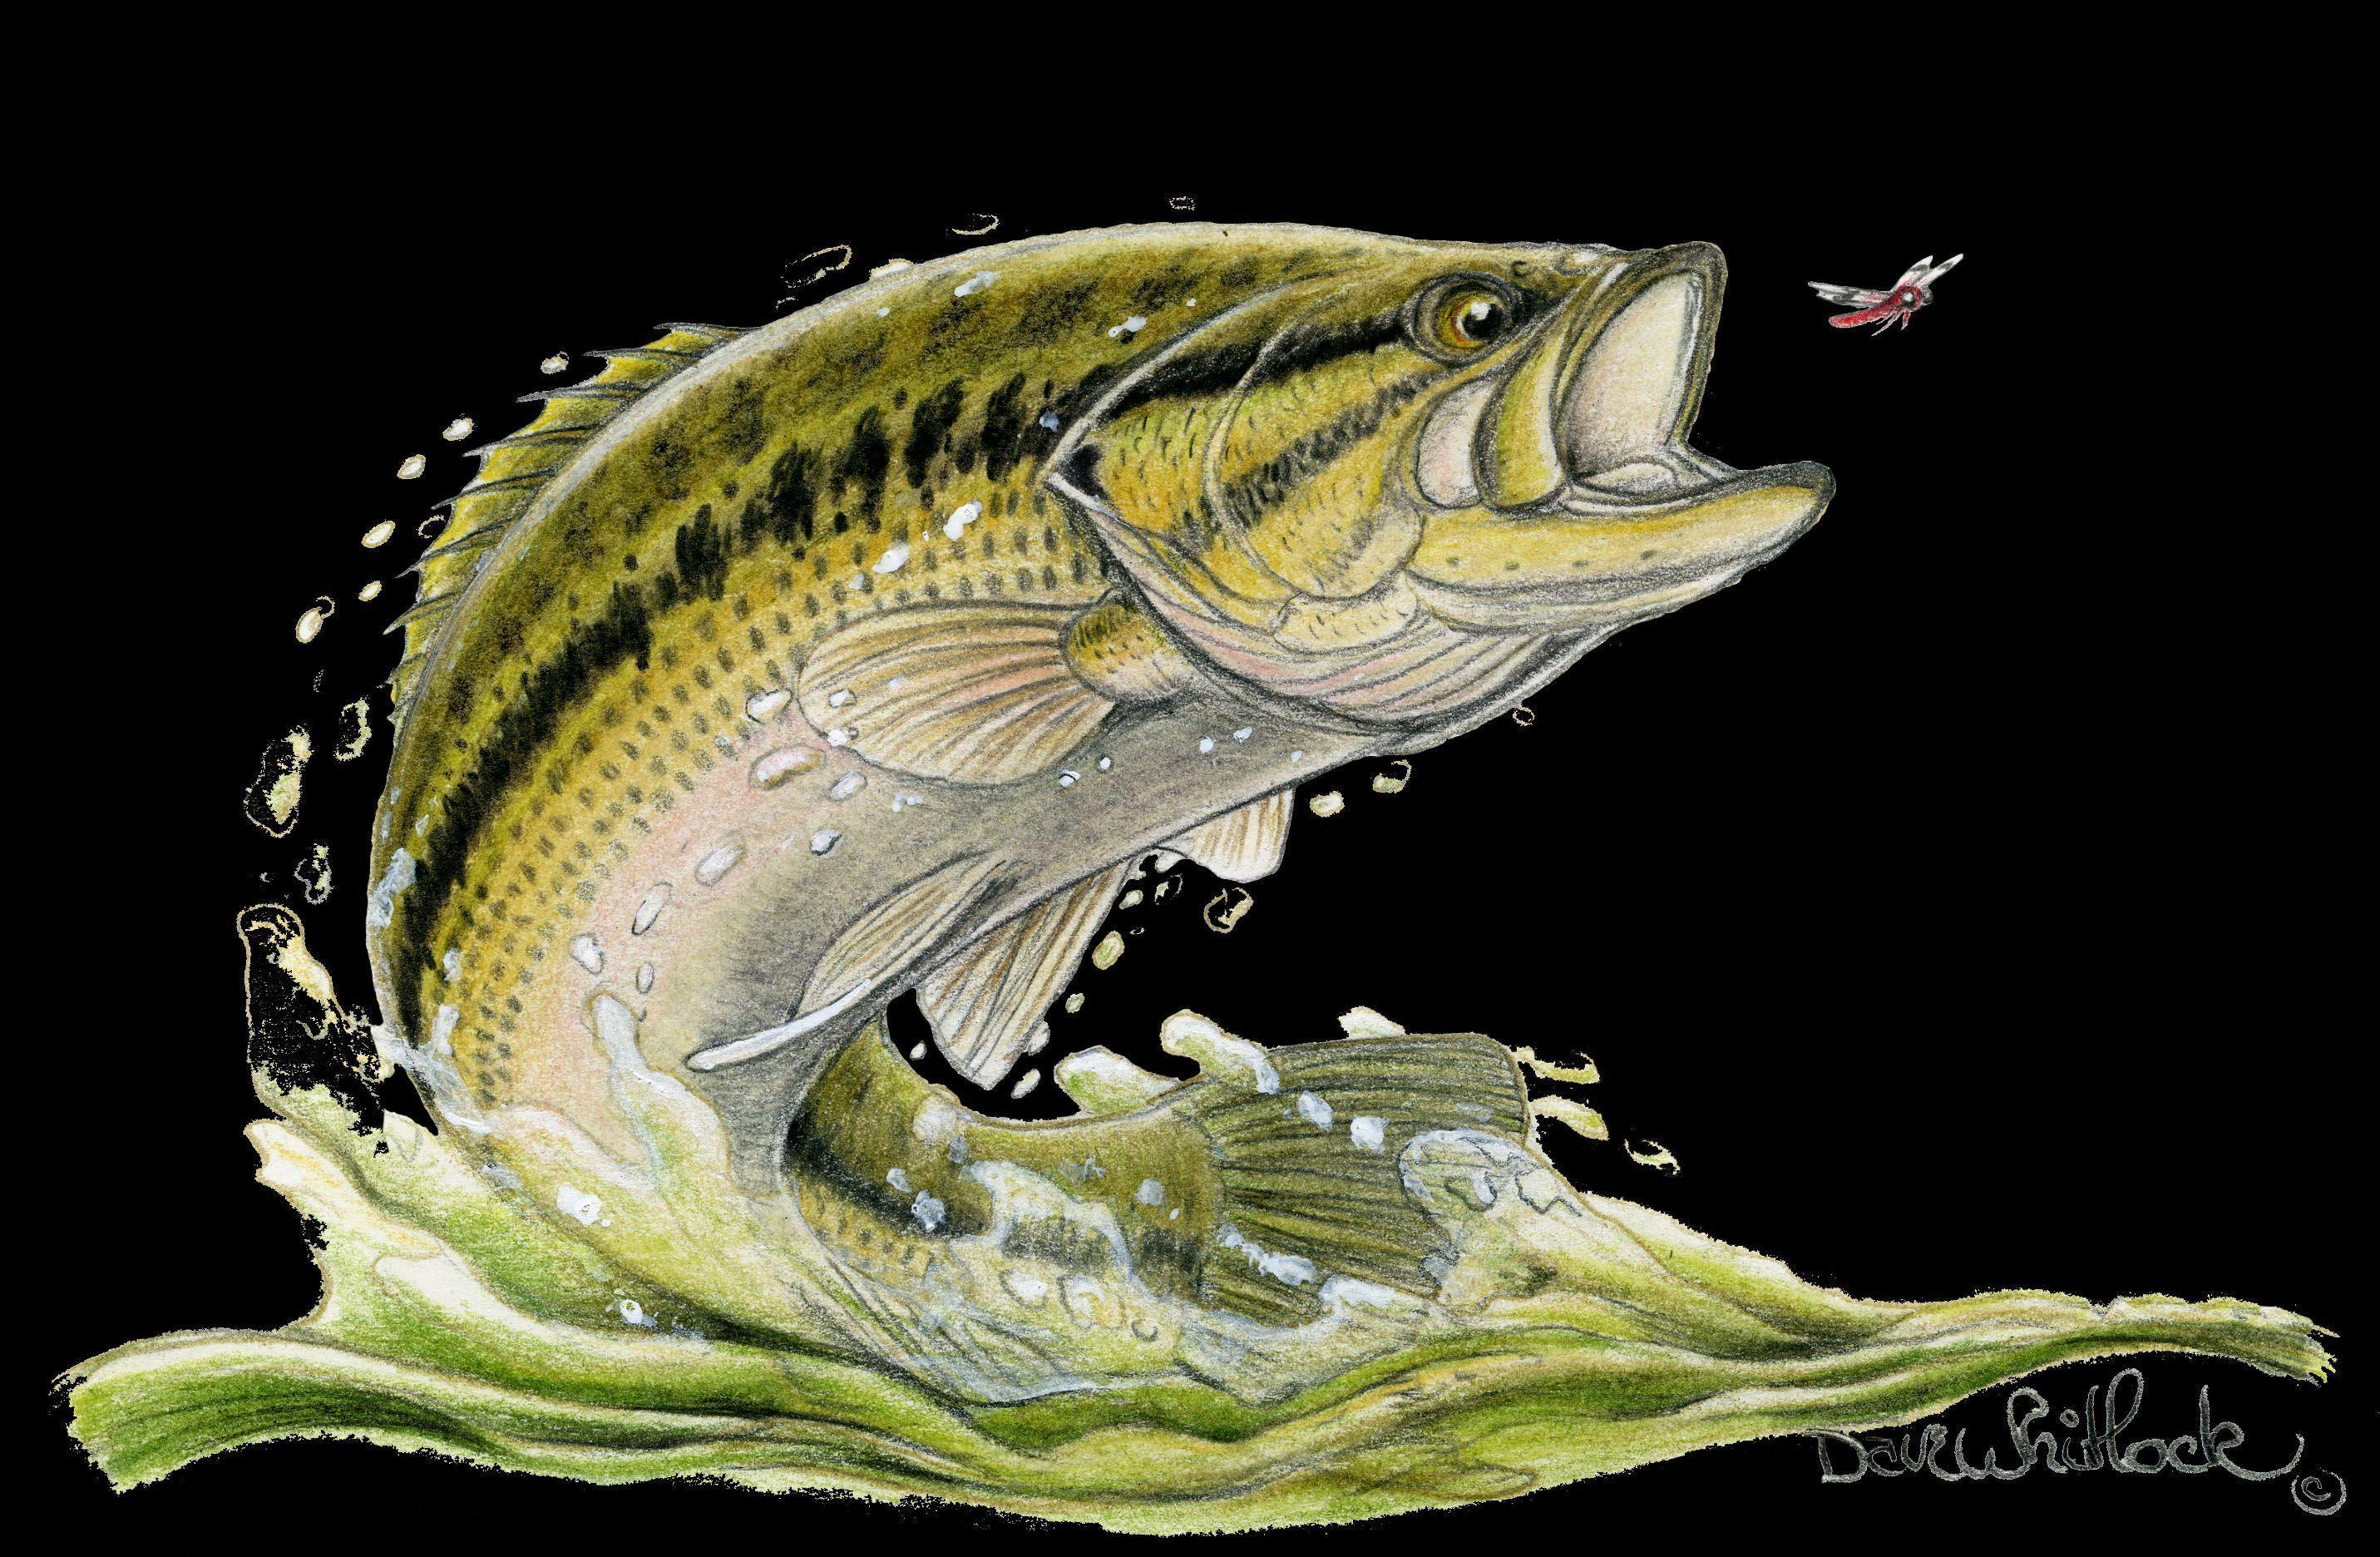 Bass Fishing Wallpaper Backgrounds - Wallpaper Cave